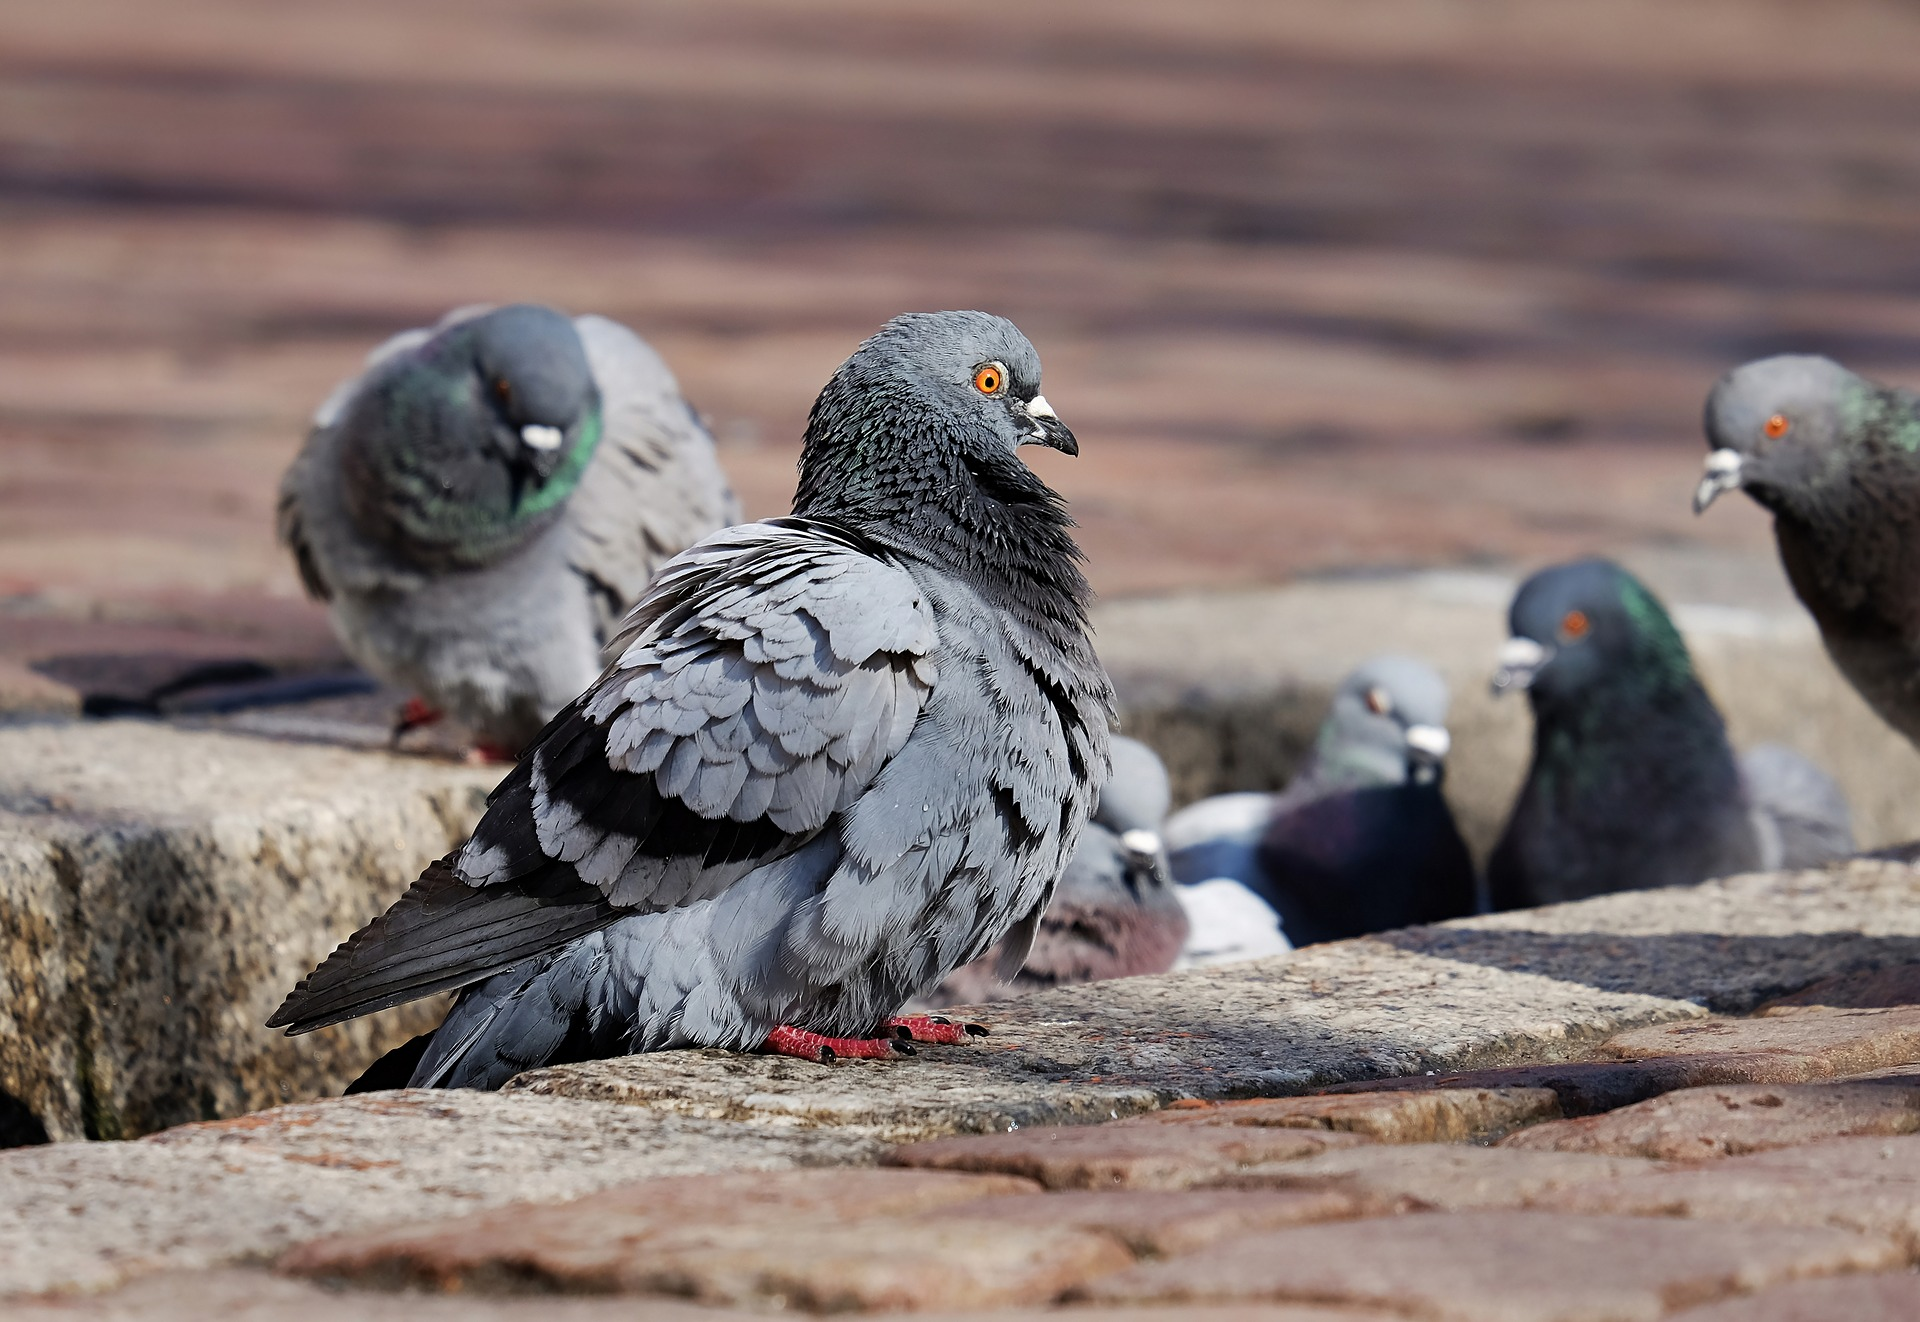 Photograph of pigeons sitting in the street